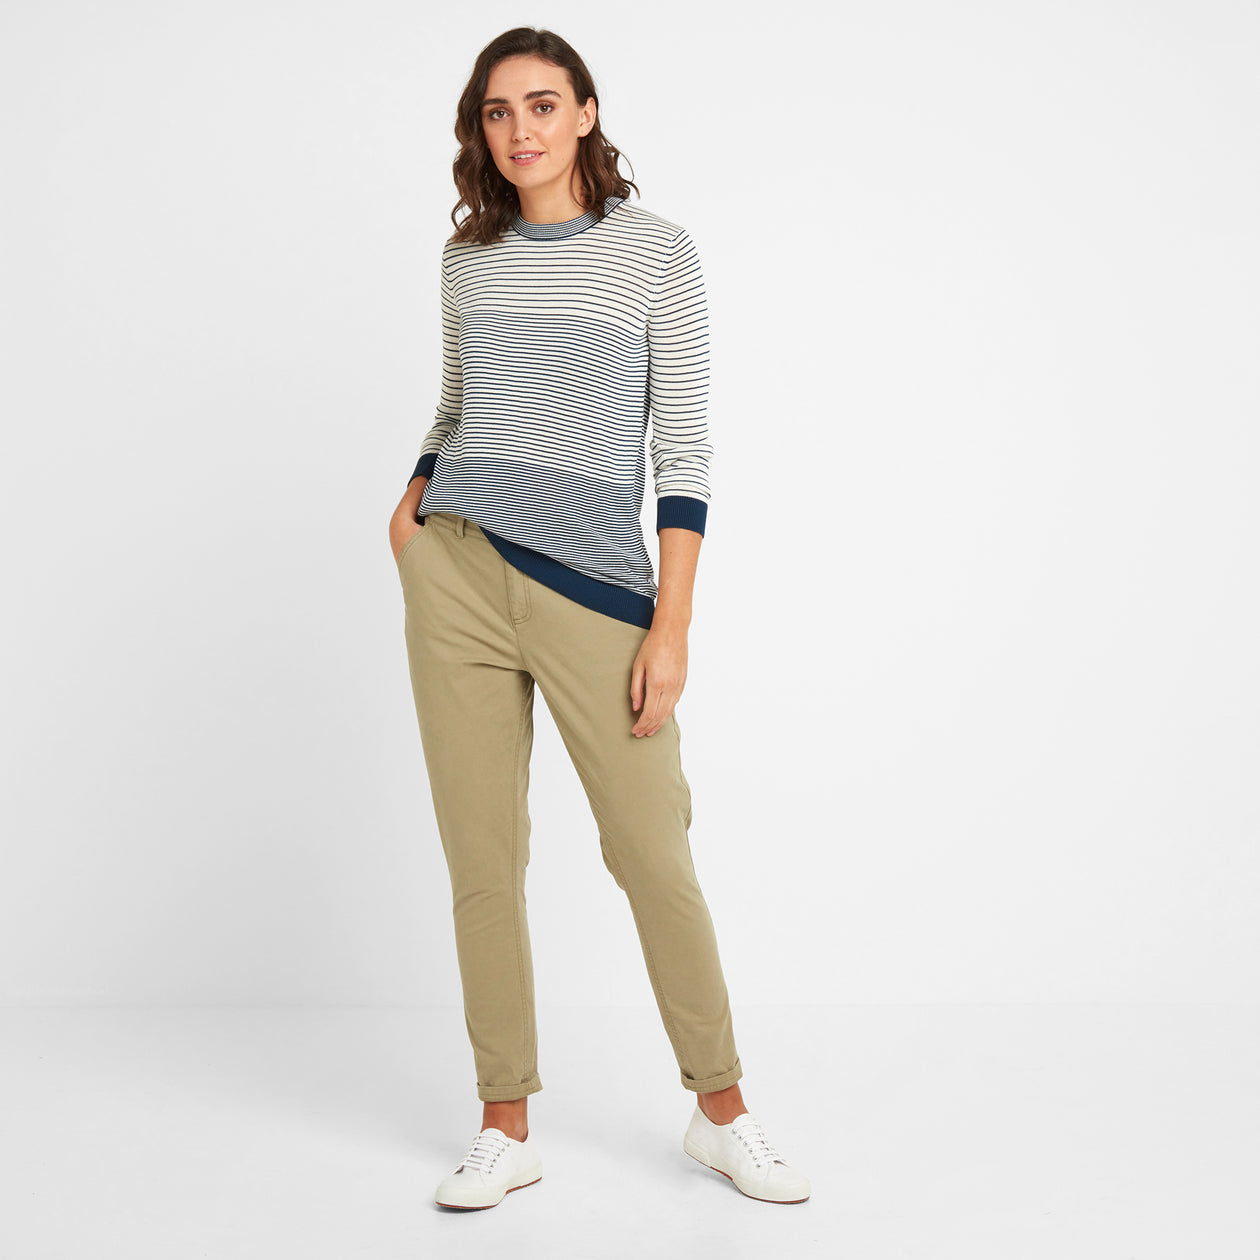 Pickering Womens Trousers Regular - Sand image 4